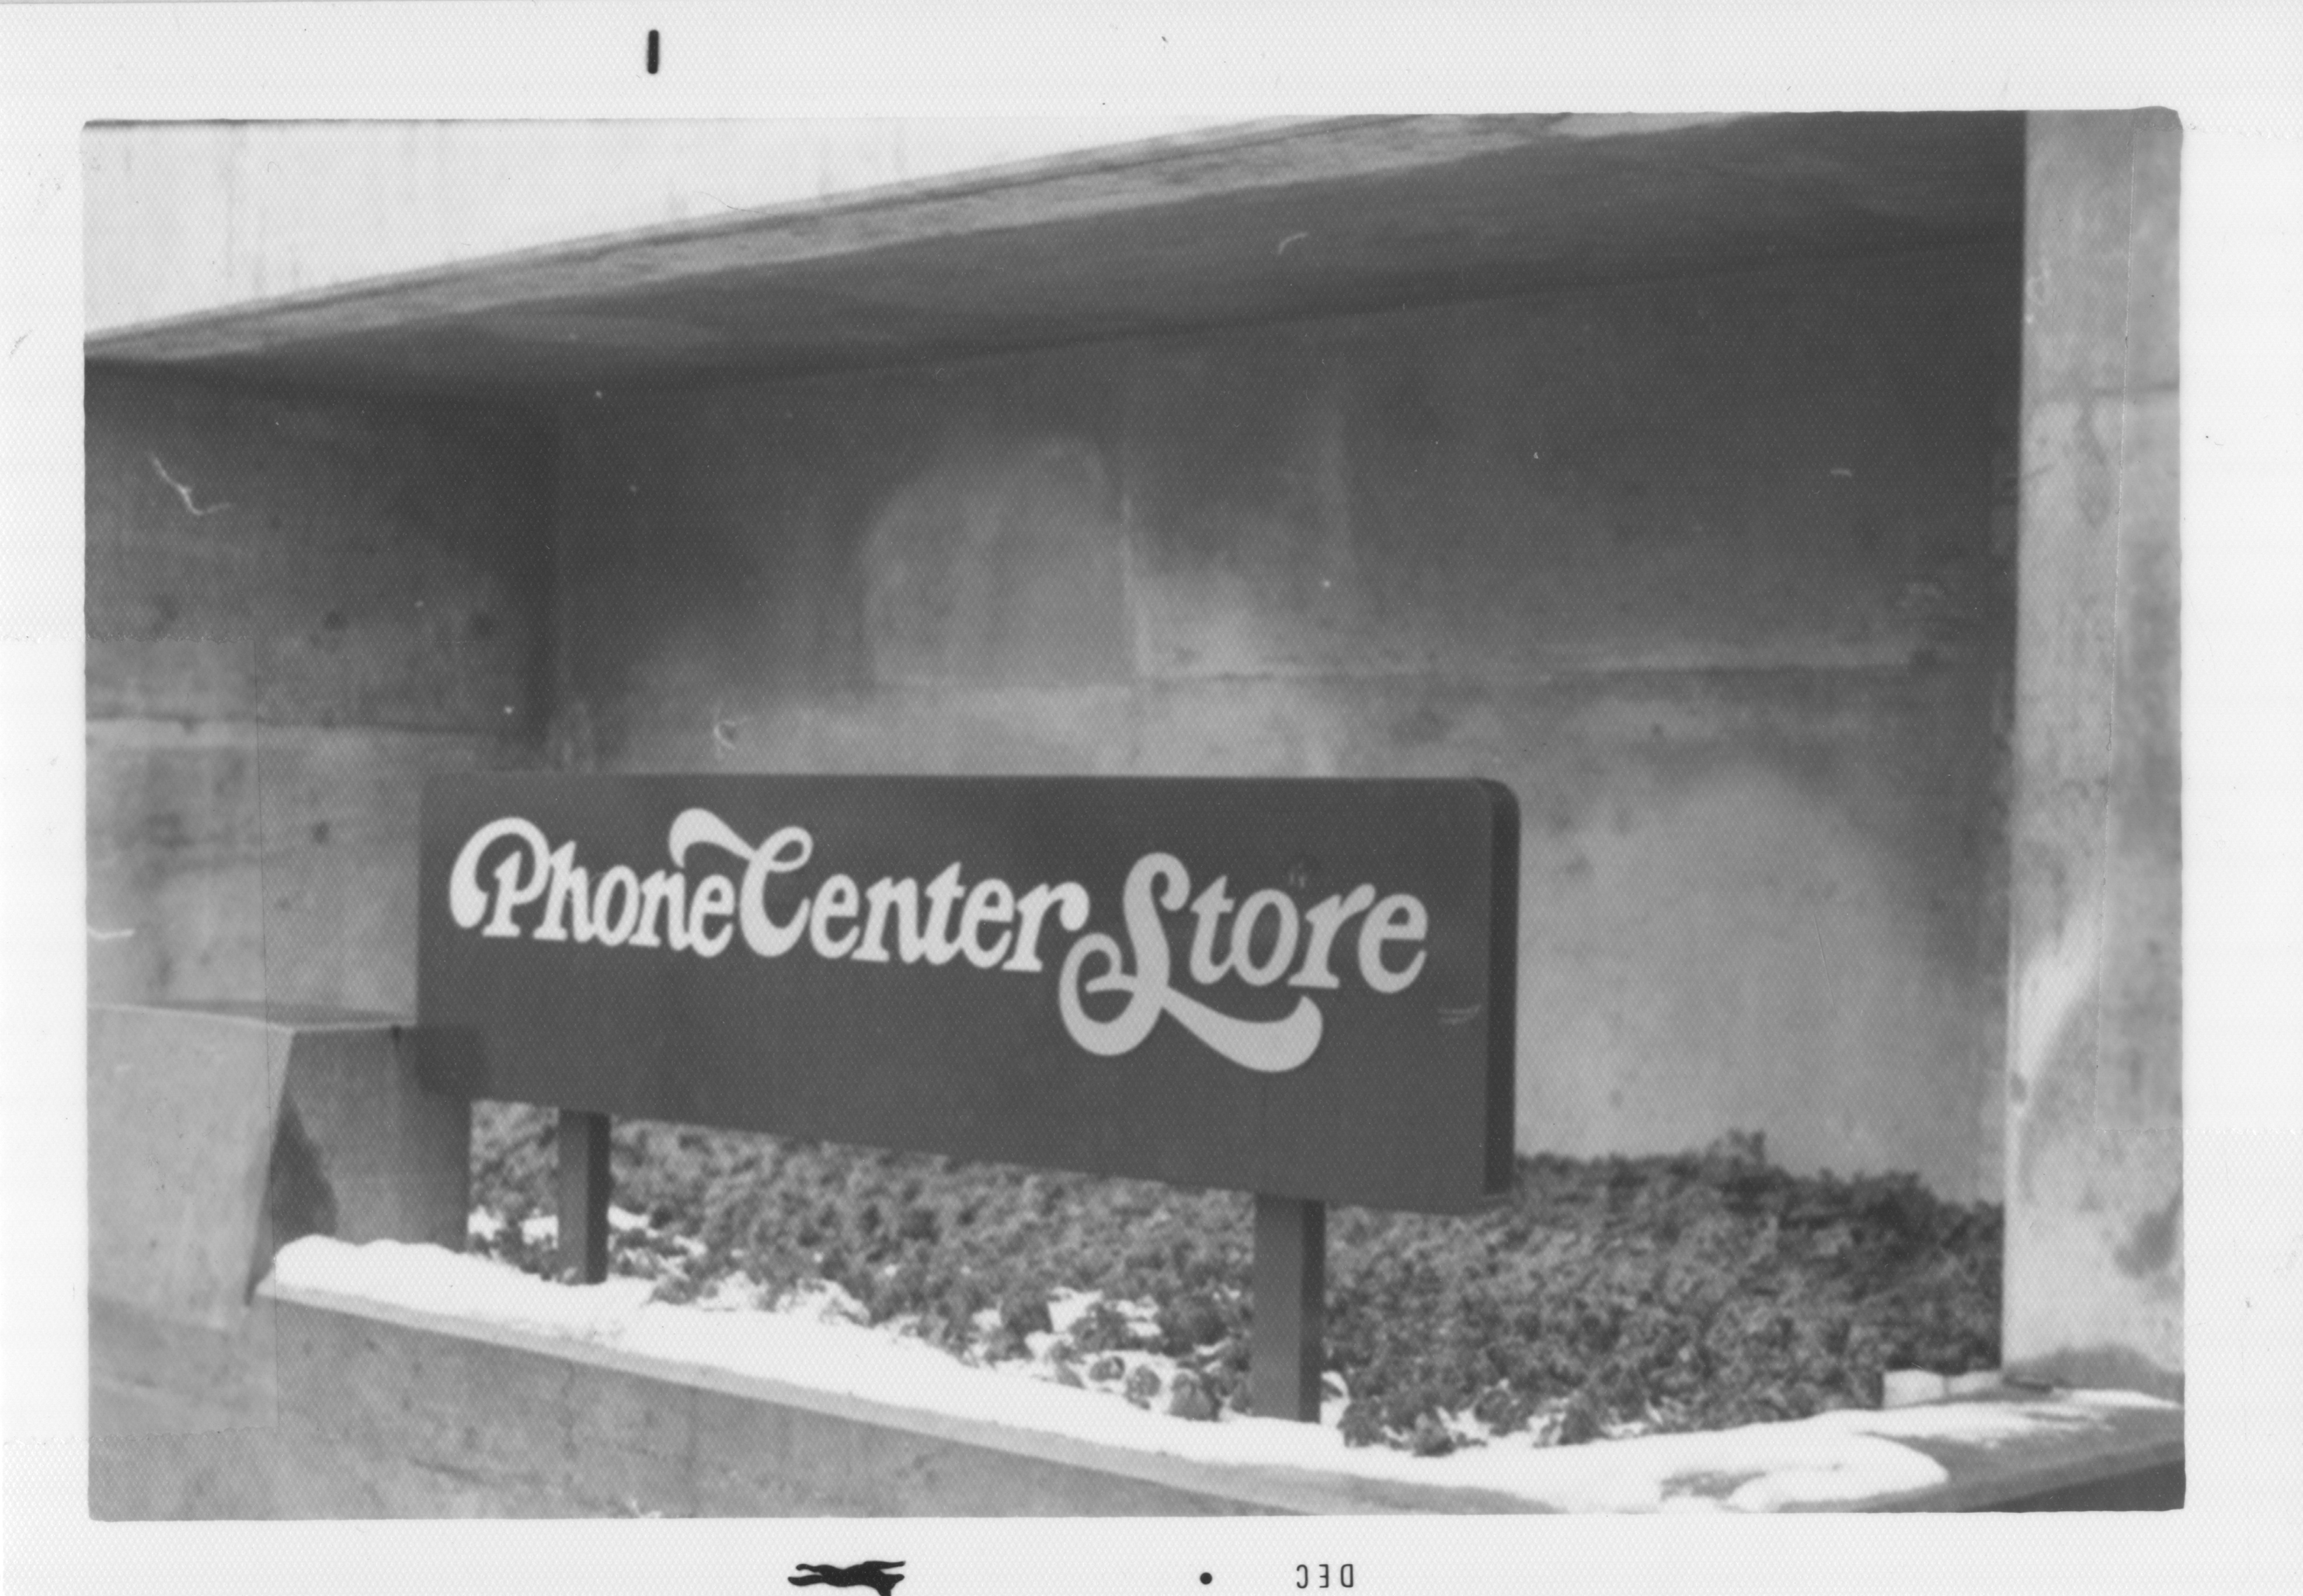 Phone Center Store (Michigan Bell), 1977 image